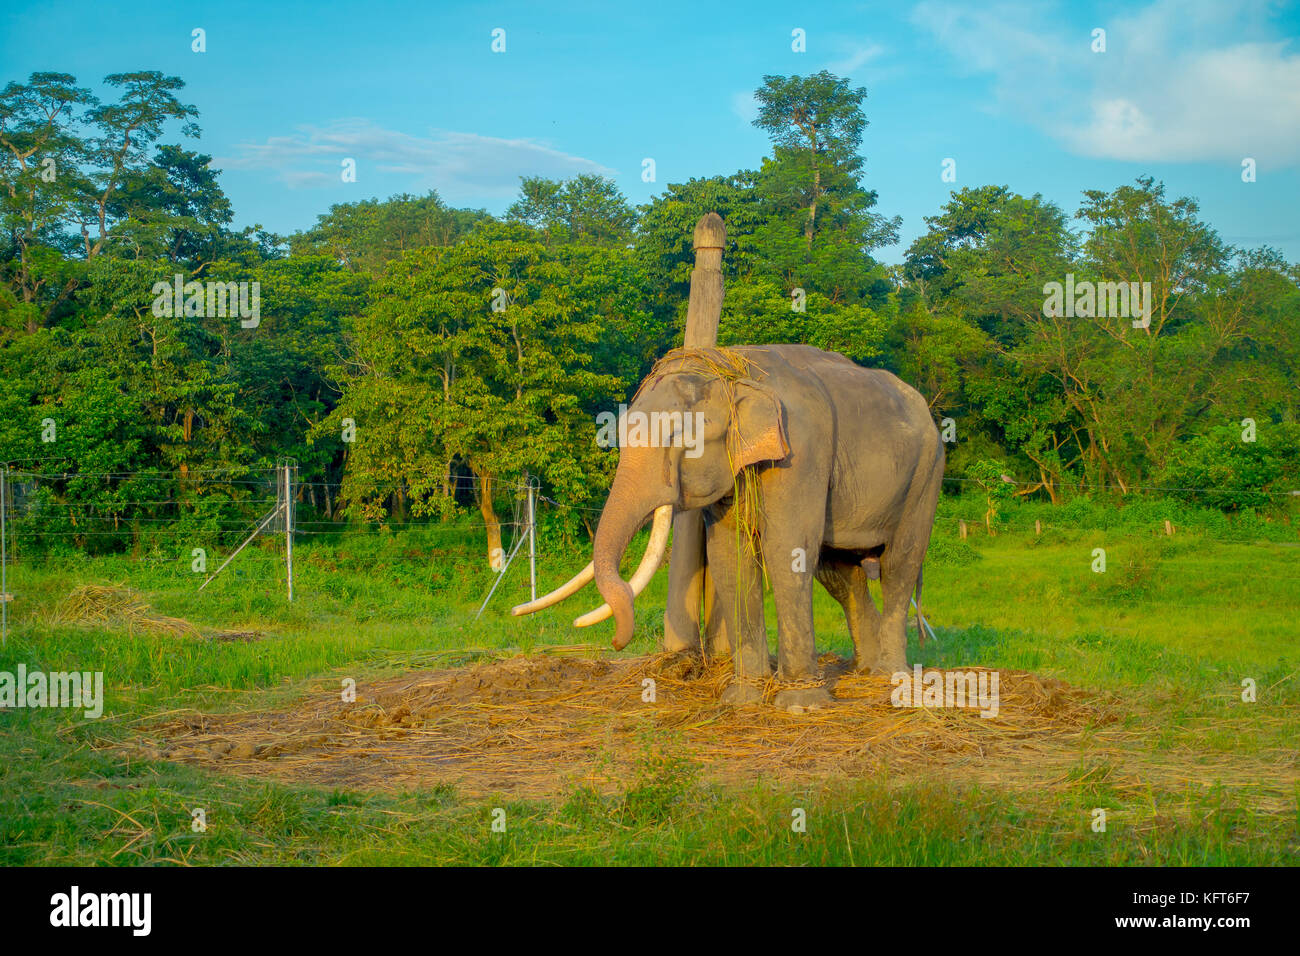 Beautiful sad elephant chained in a wooden pillar at outdoors, in Chitwan National Park, Nepal, sad paquiderm in - Stock Image